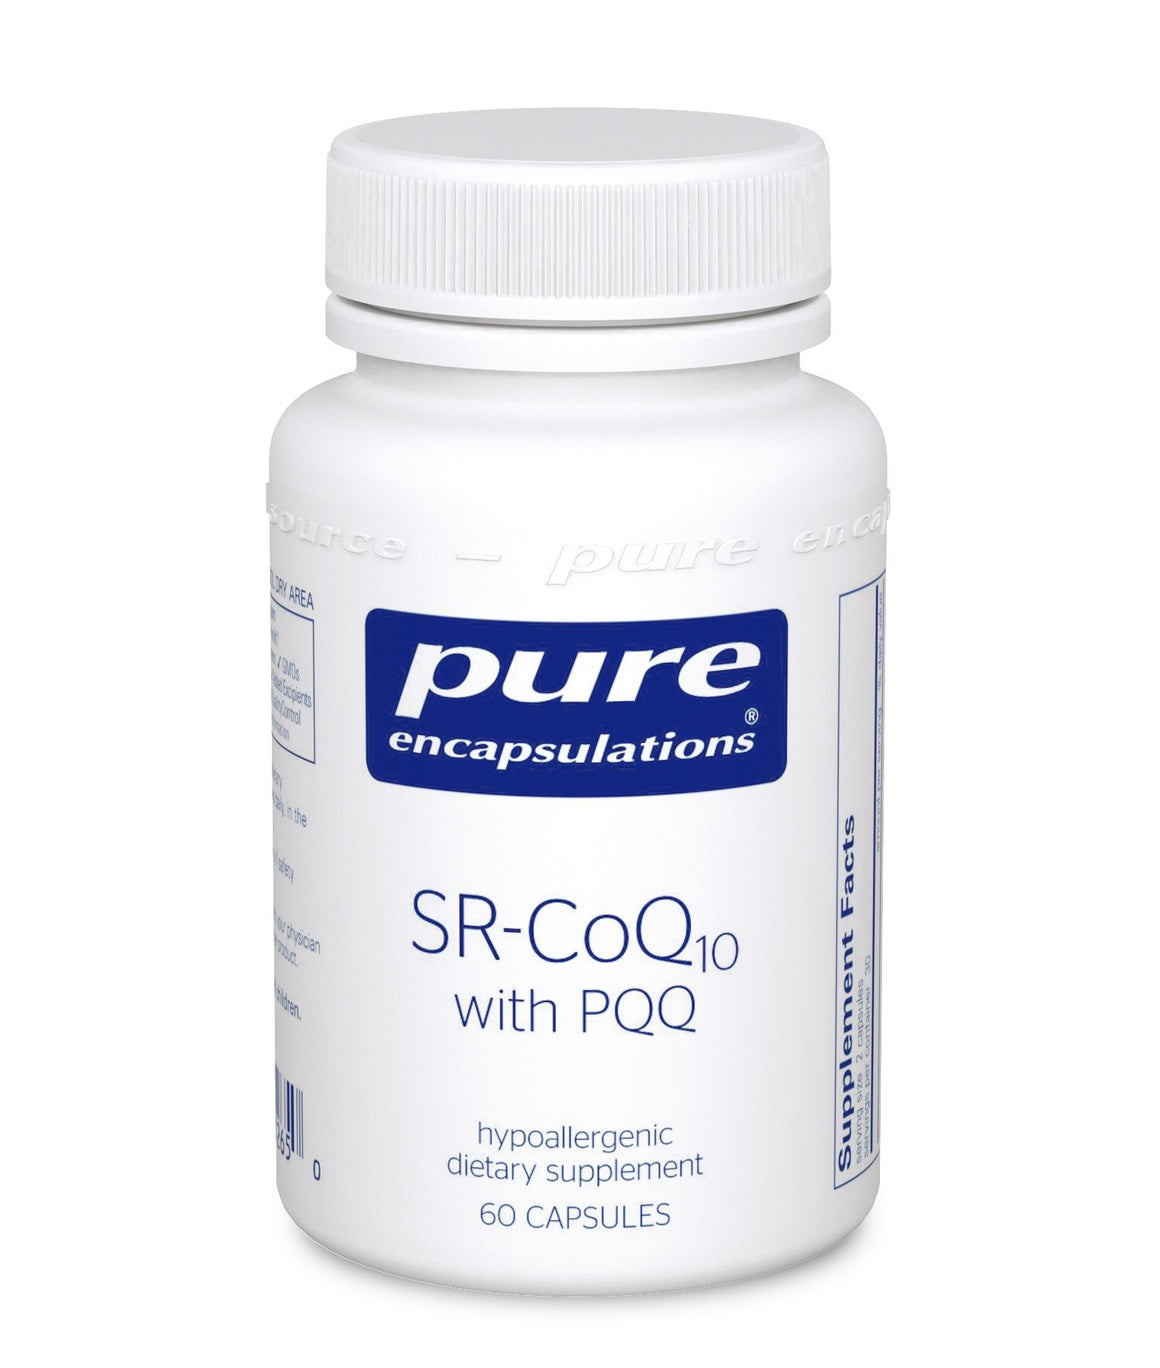 A bottle of Pure SR-CoQ10 with PQQ